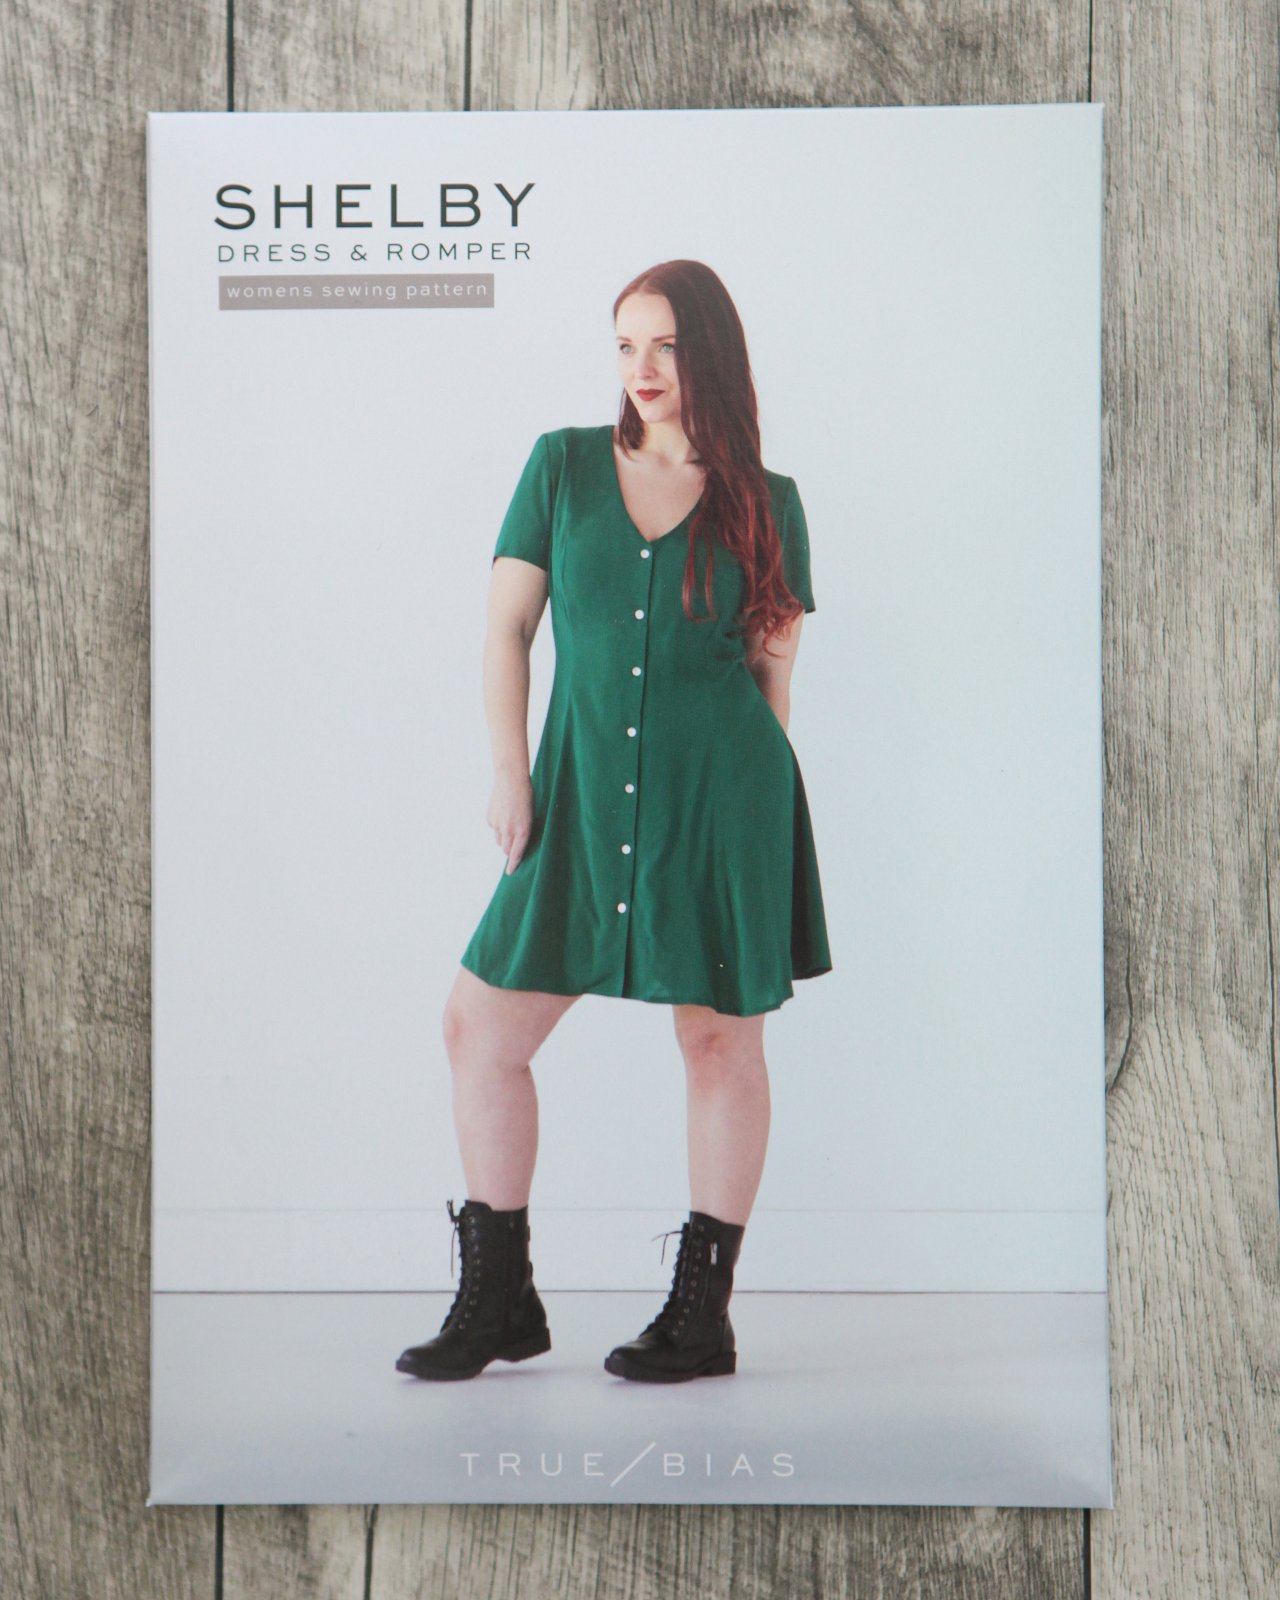 True Bias Shelby Dress / Romper Paper Pattern